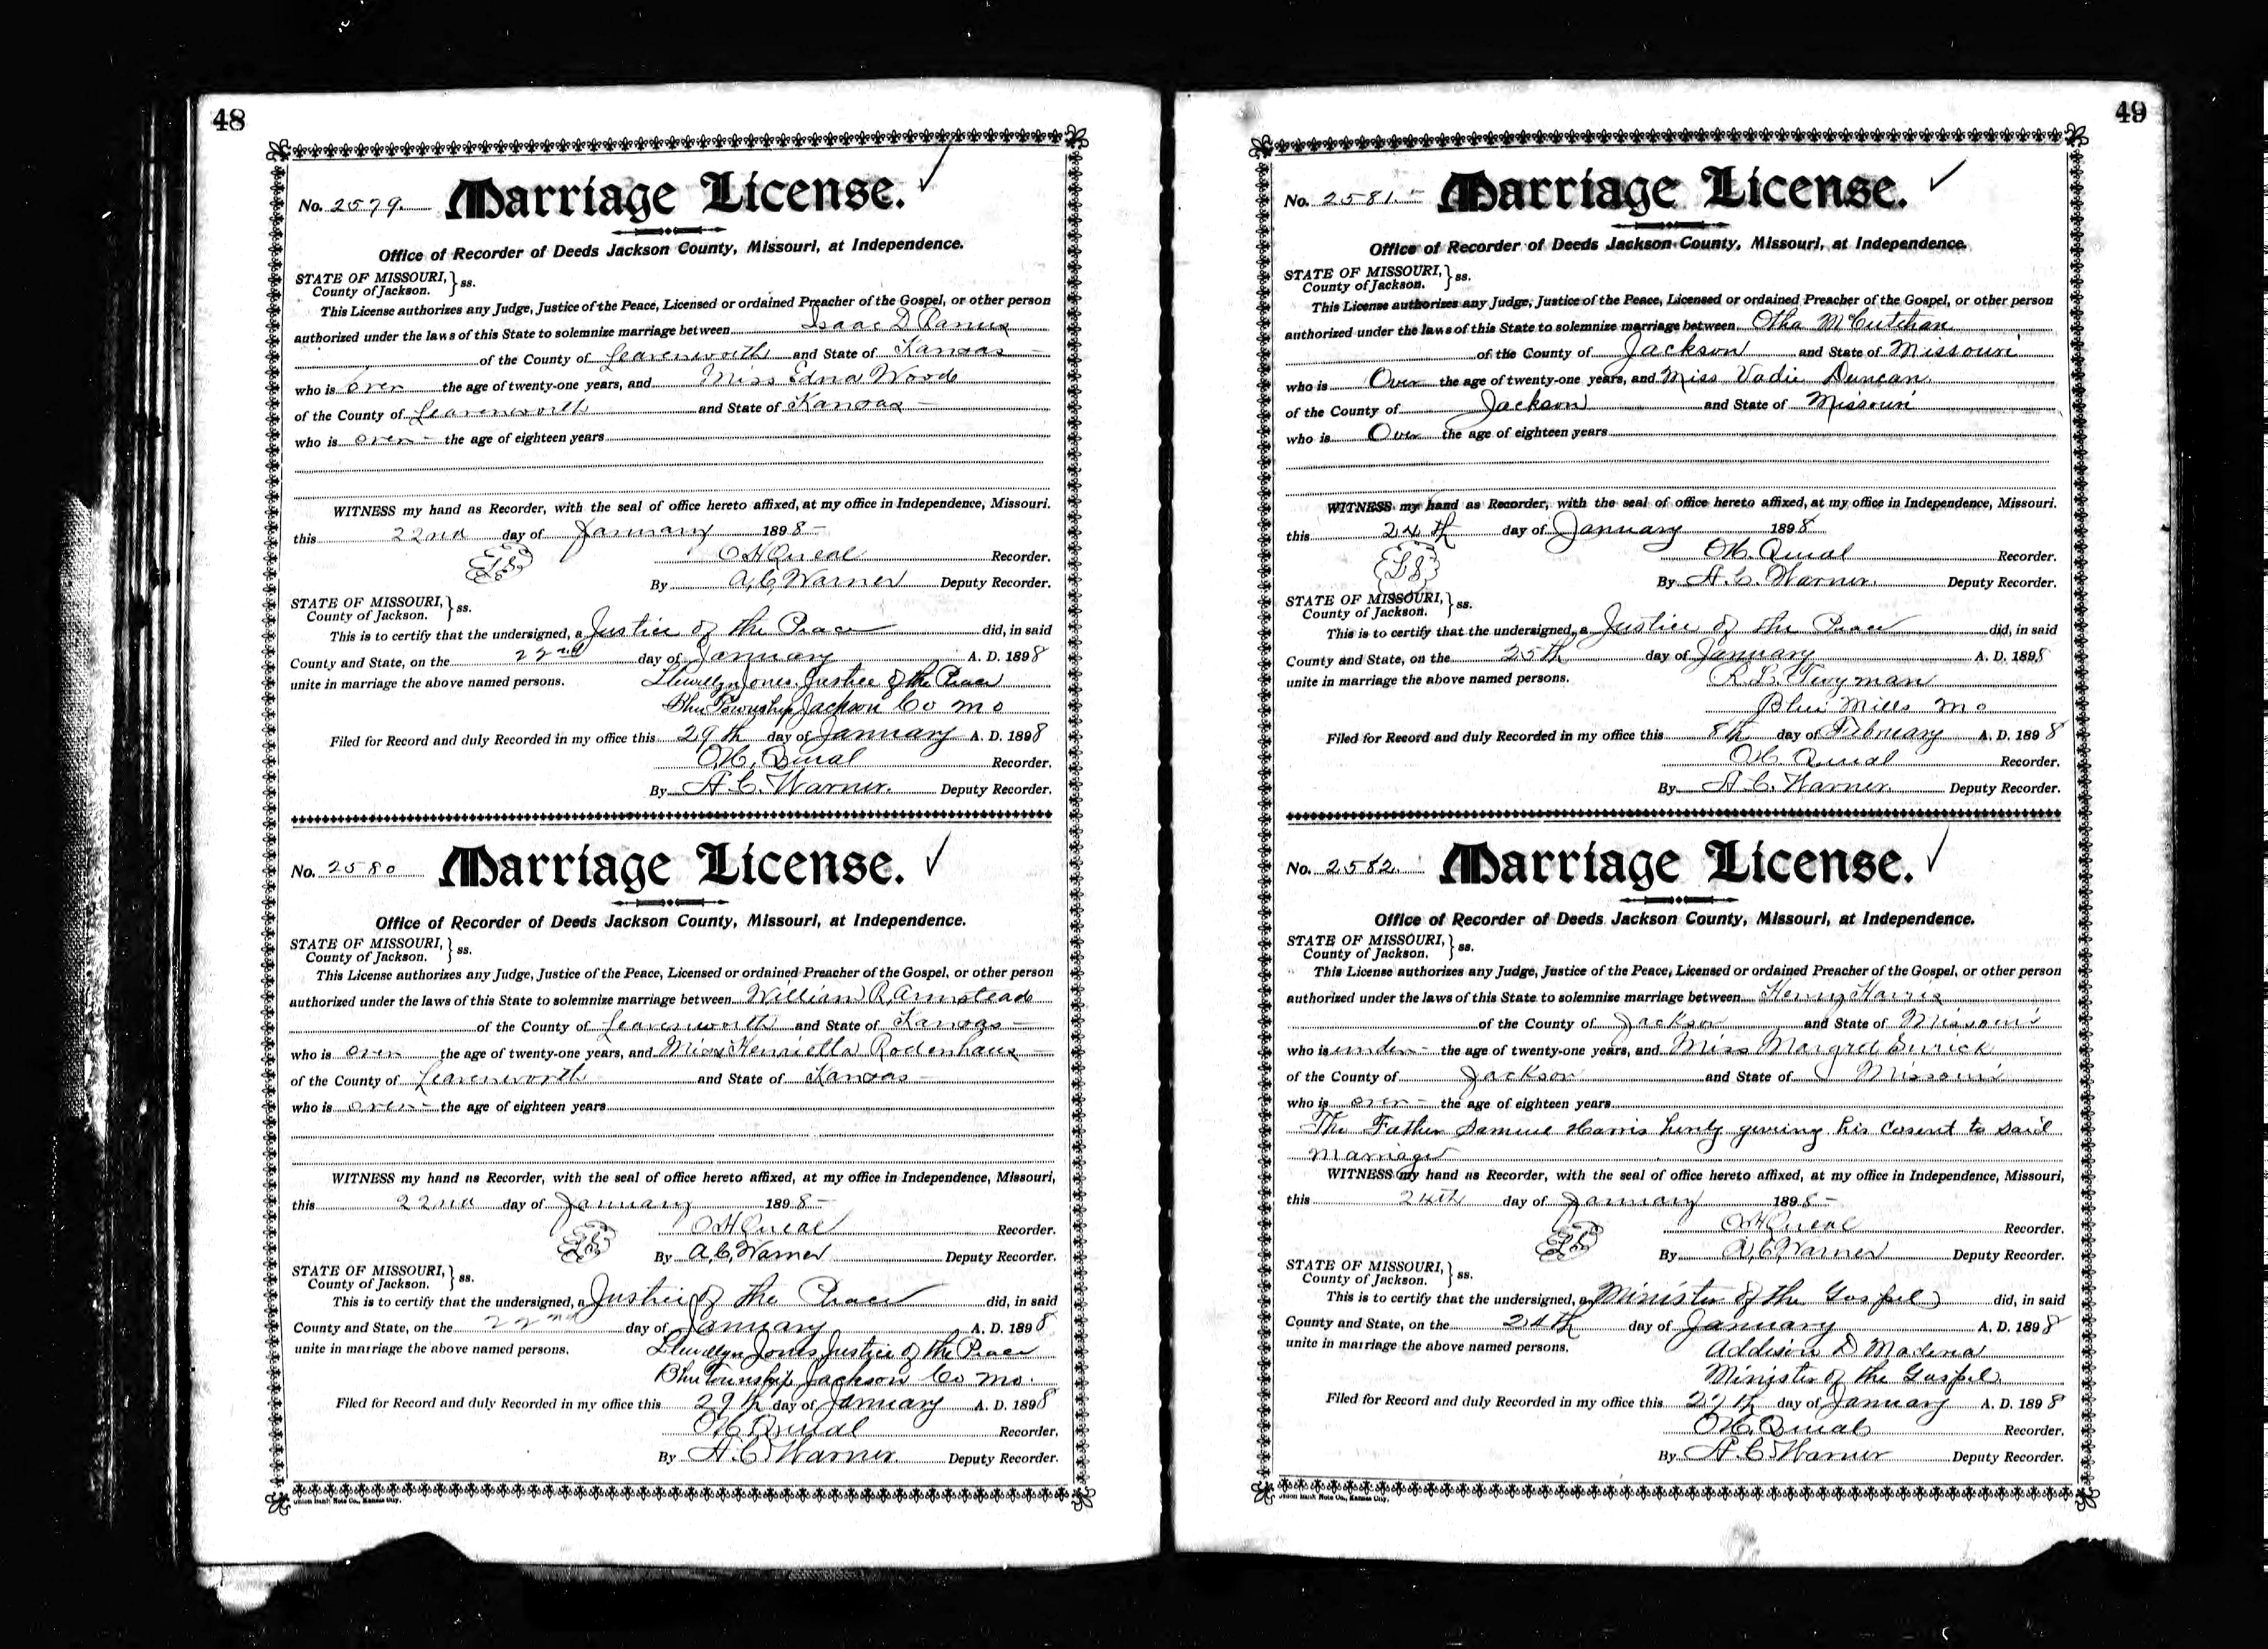 1007 lake avenue pueblo co 81004 date of marriage january 22 1898 jackson independence county missouri marriage certificate aiddatafo Choice Image